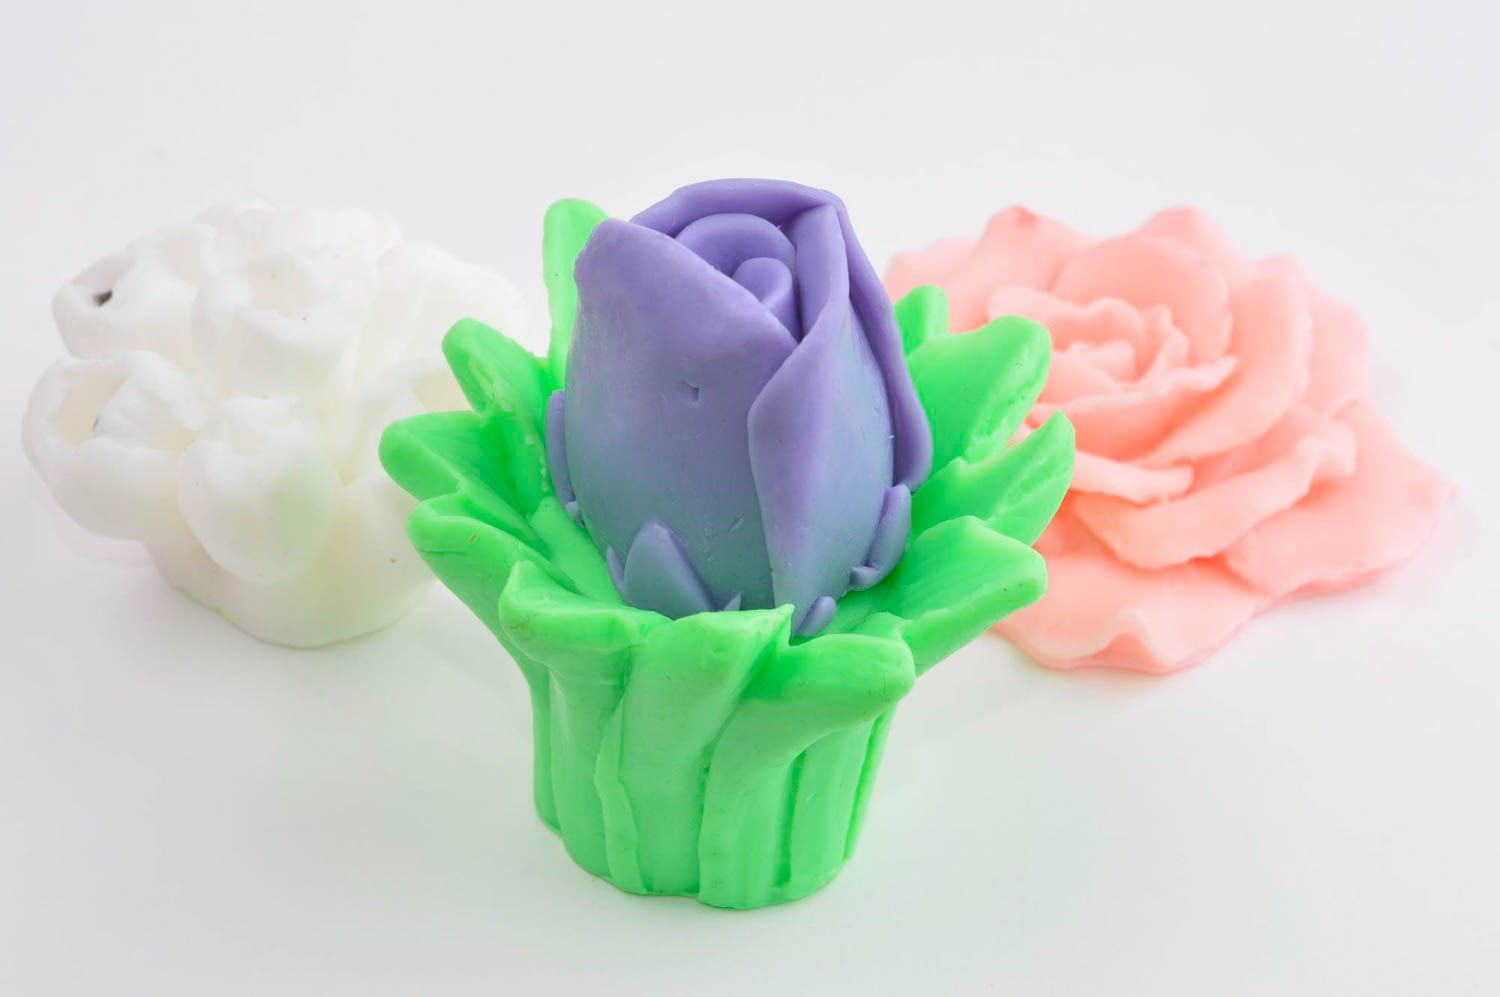 Handmade soap set natural cosmetics 4 flowers pieces natural soap gift idea photo 3